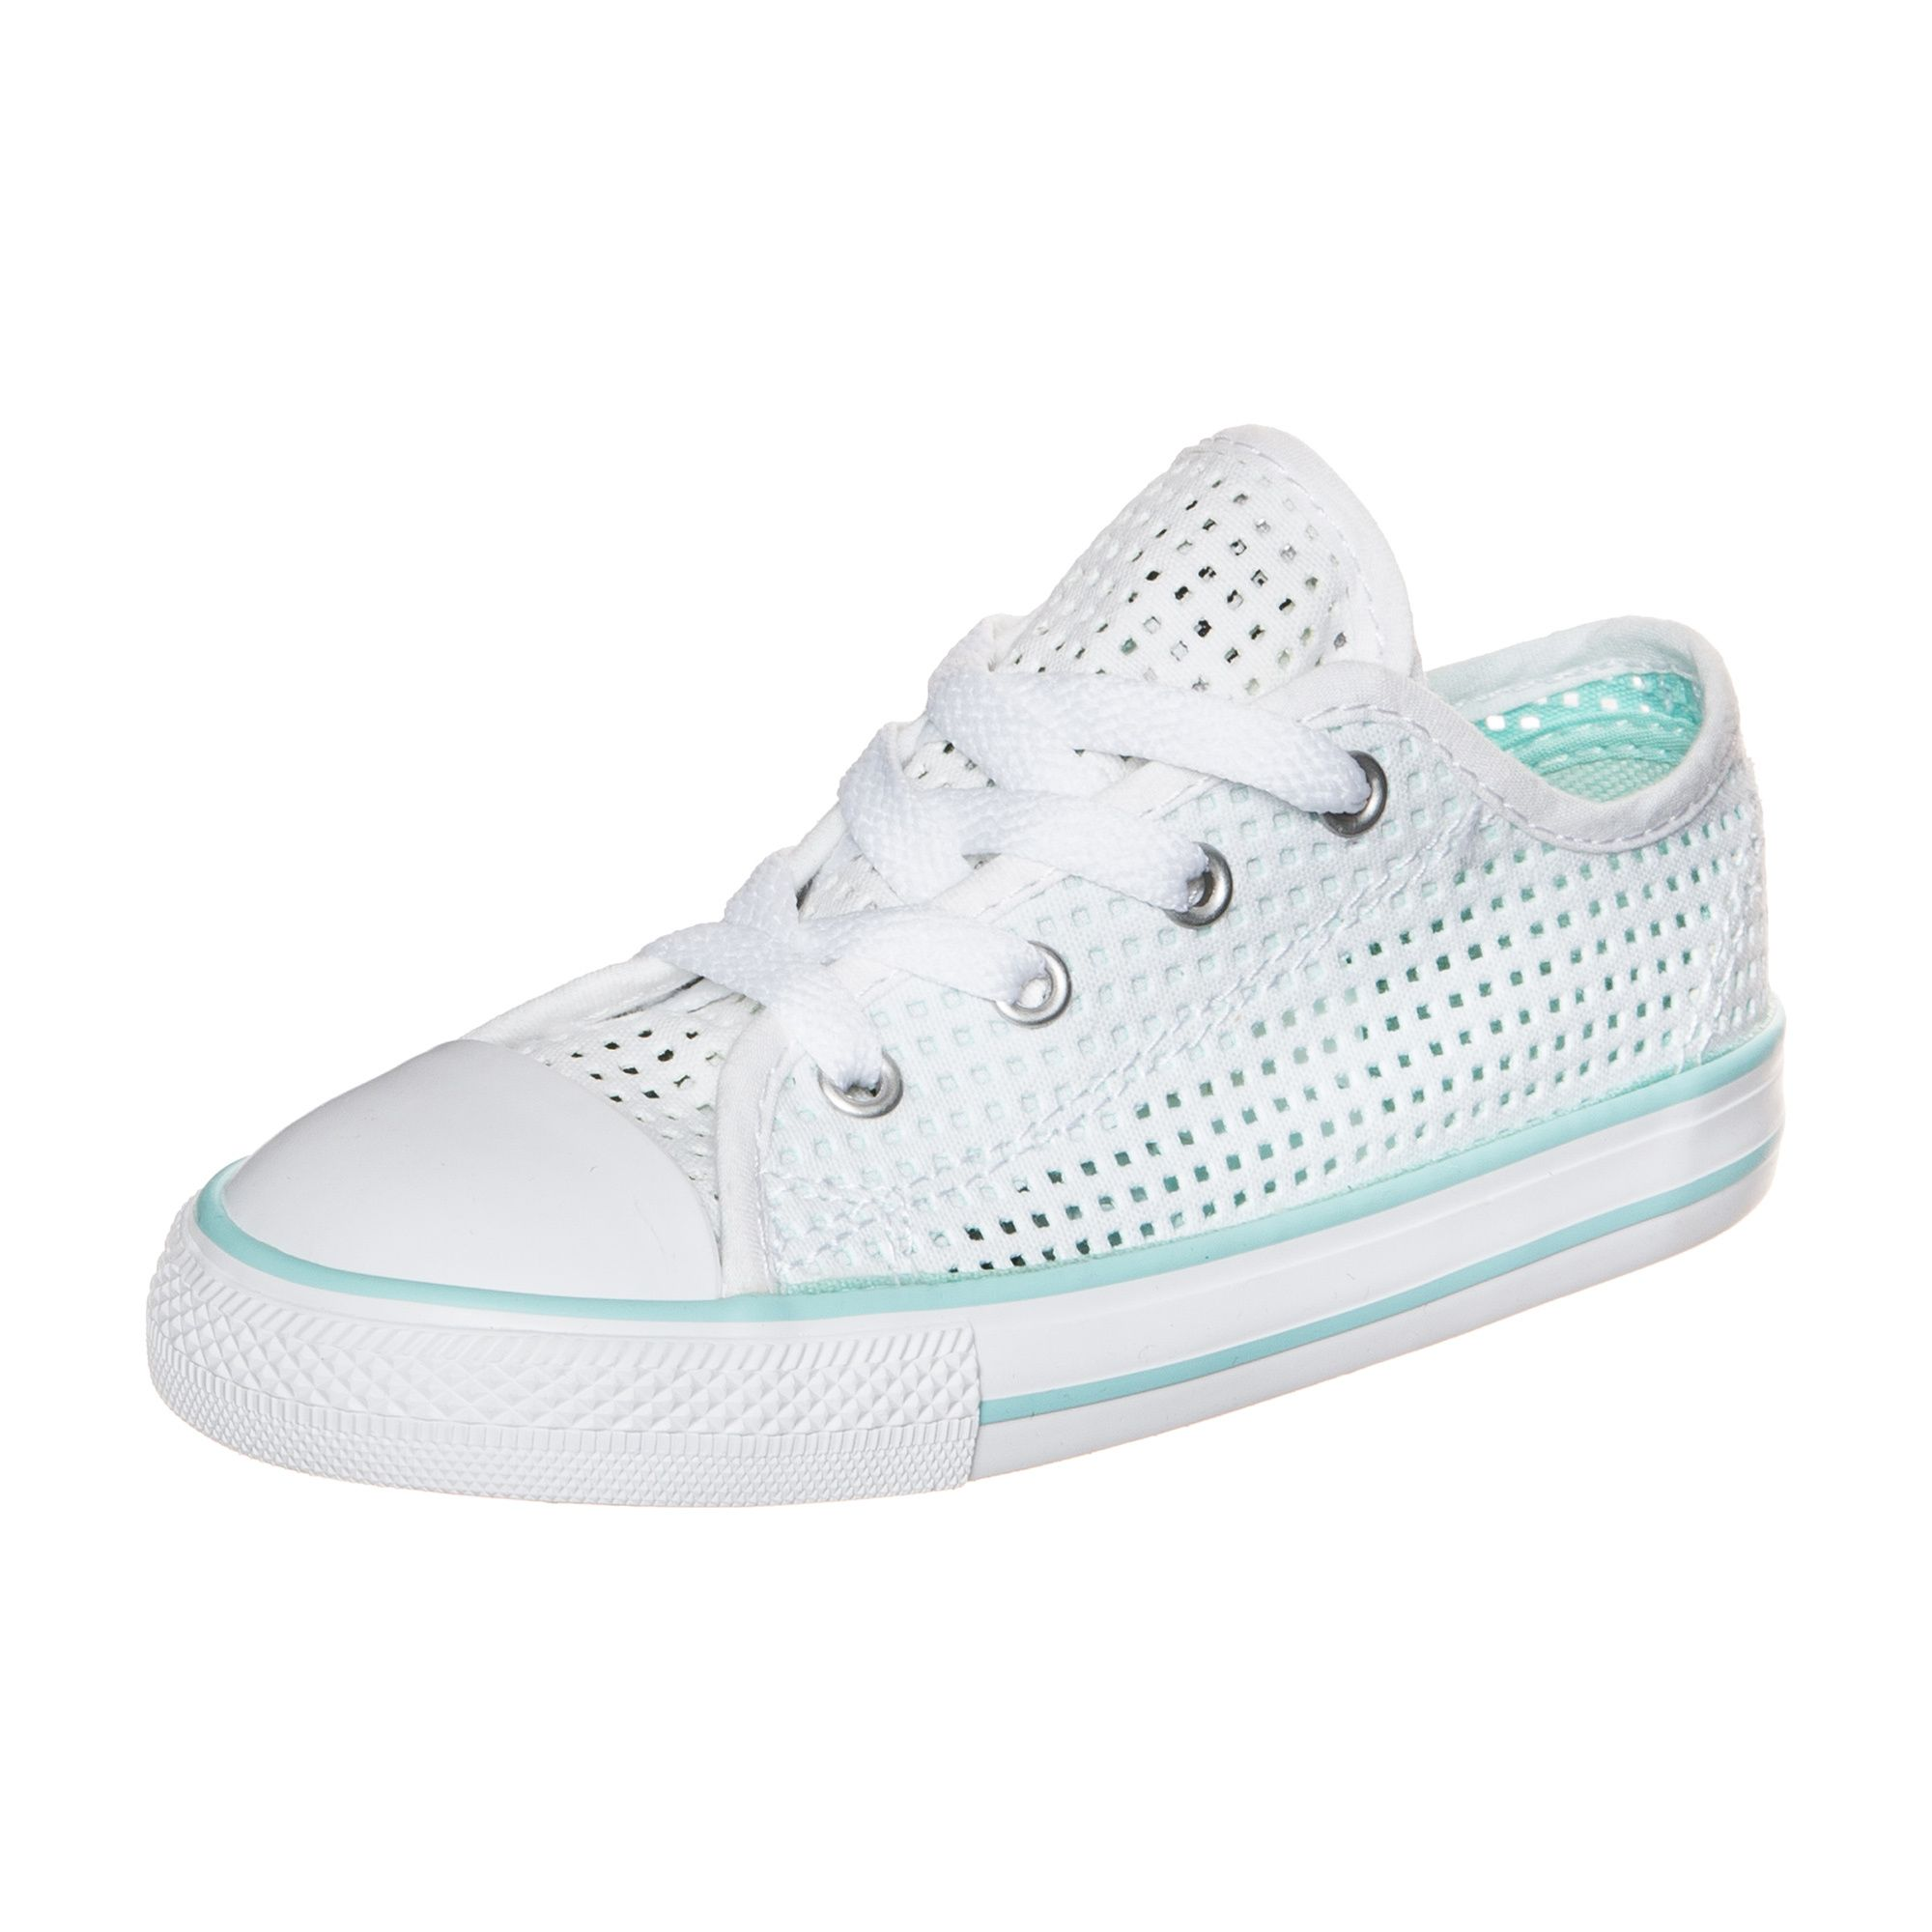 CONVERSE Converse Chuck Taylor All Star Double Tongue OX Sneaker Kleinkinder